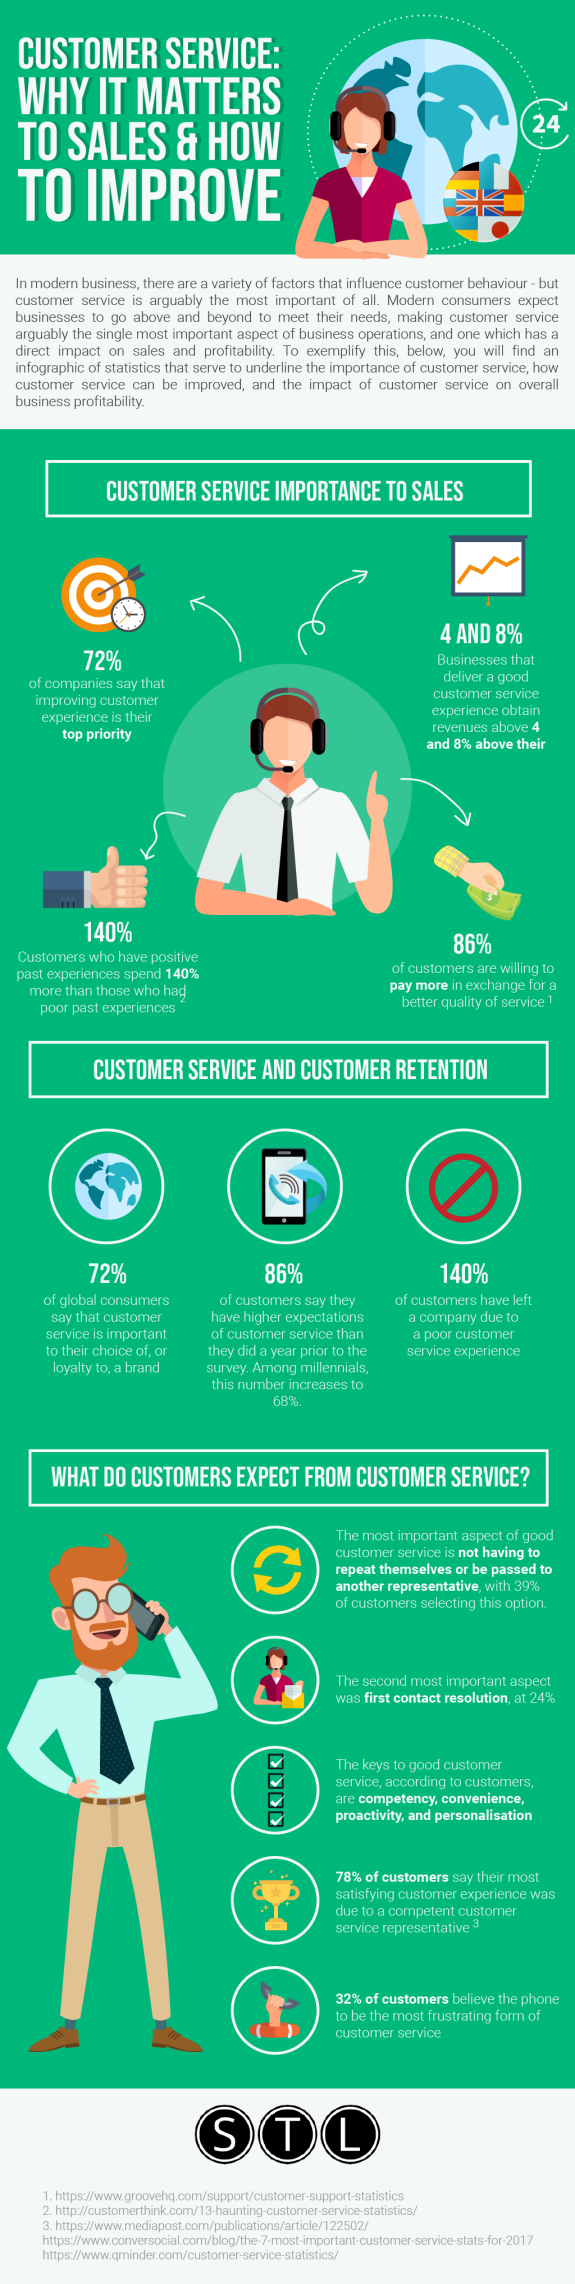 Customer Service - Why it Matters to Sales and How to Improve